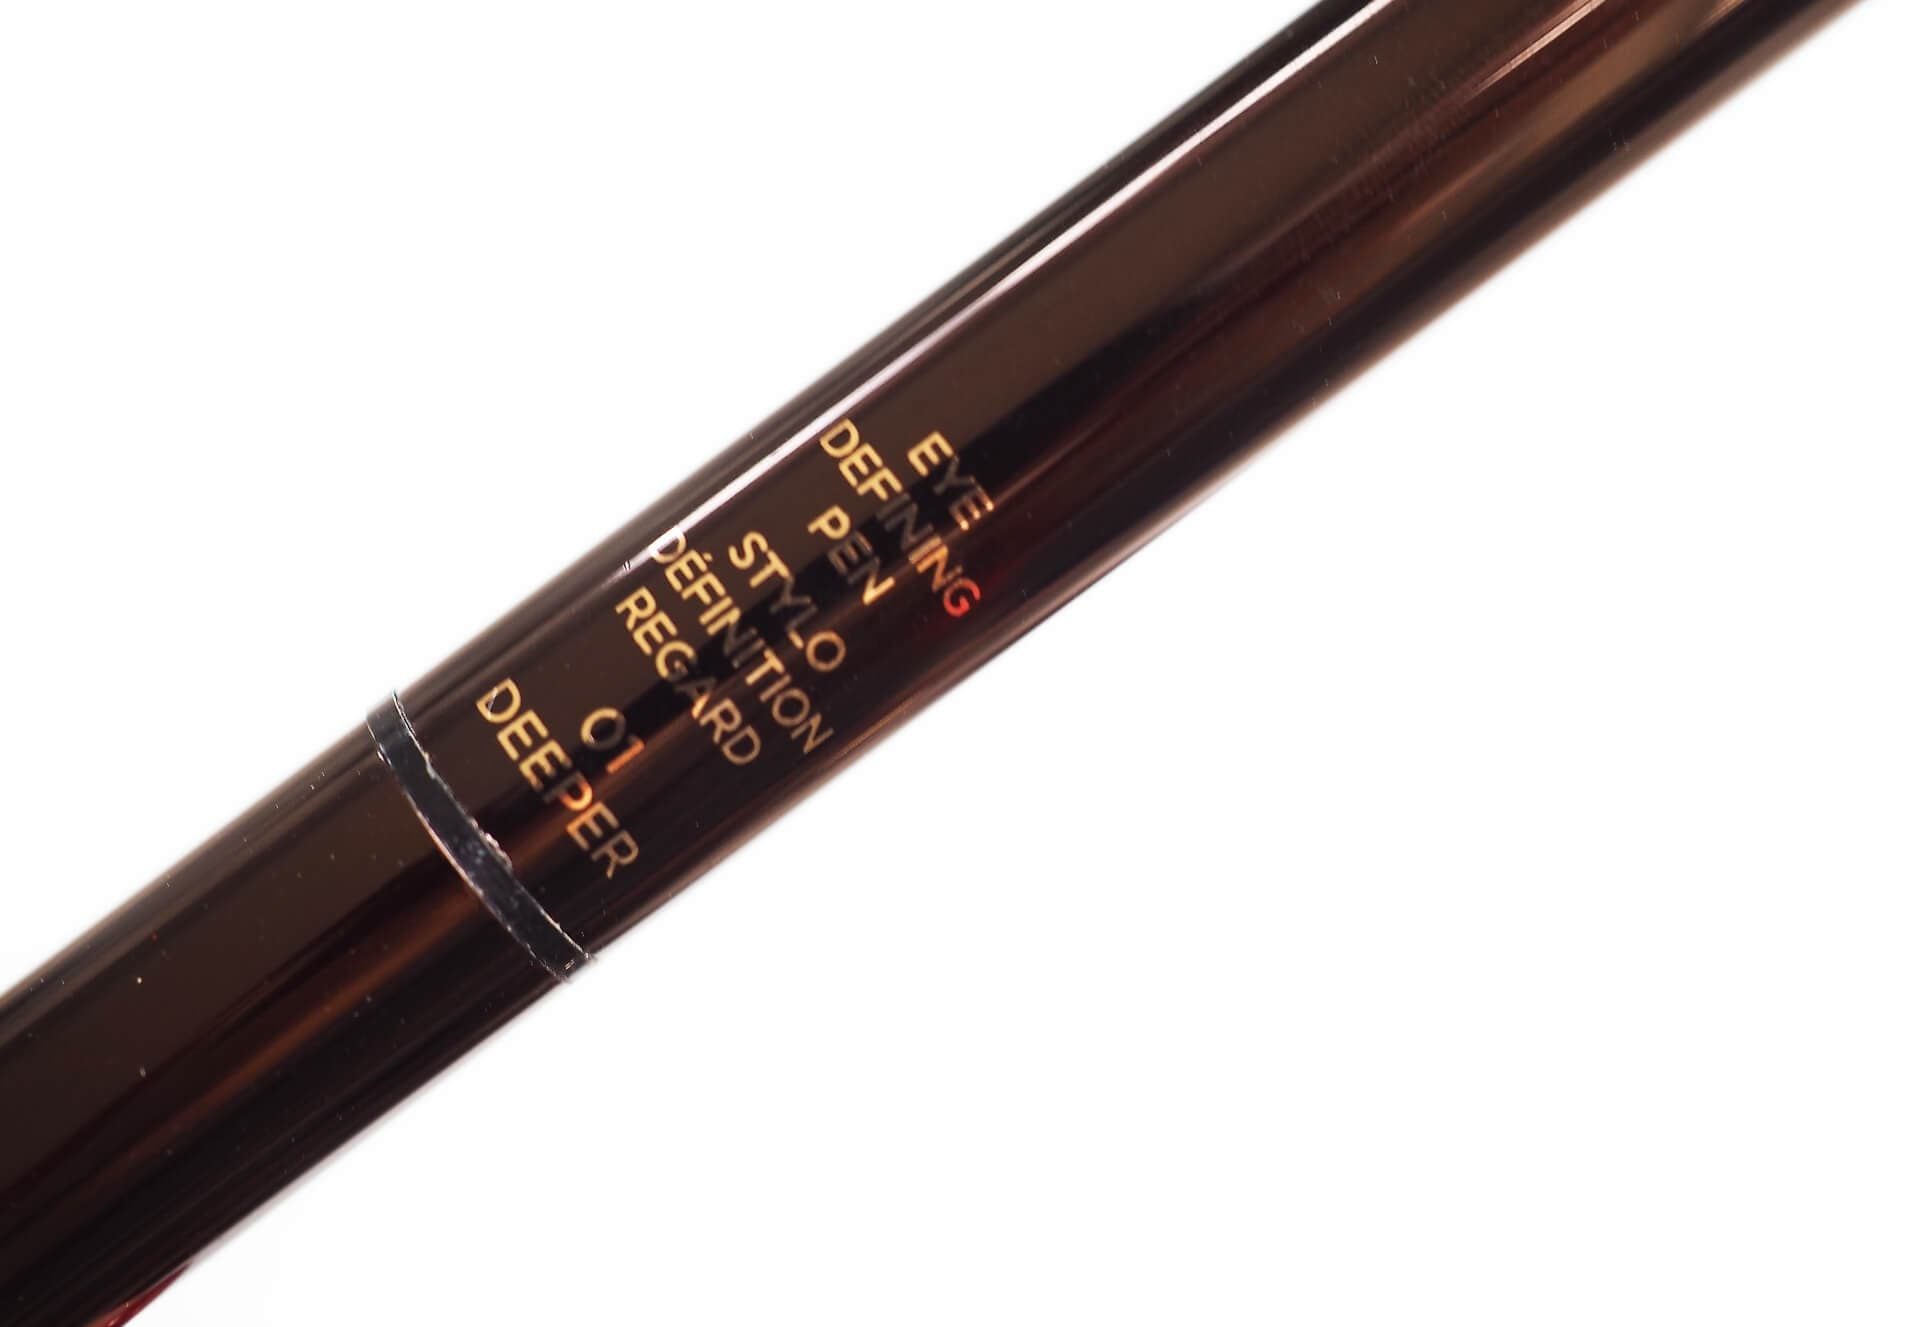 Tom Ford Eye Defining Pen Eye-liner